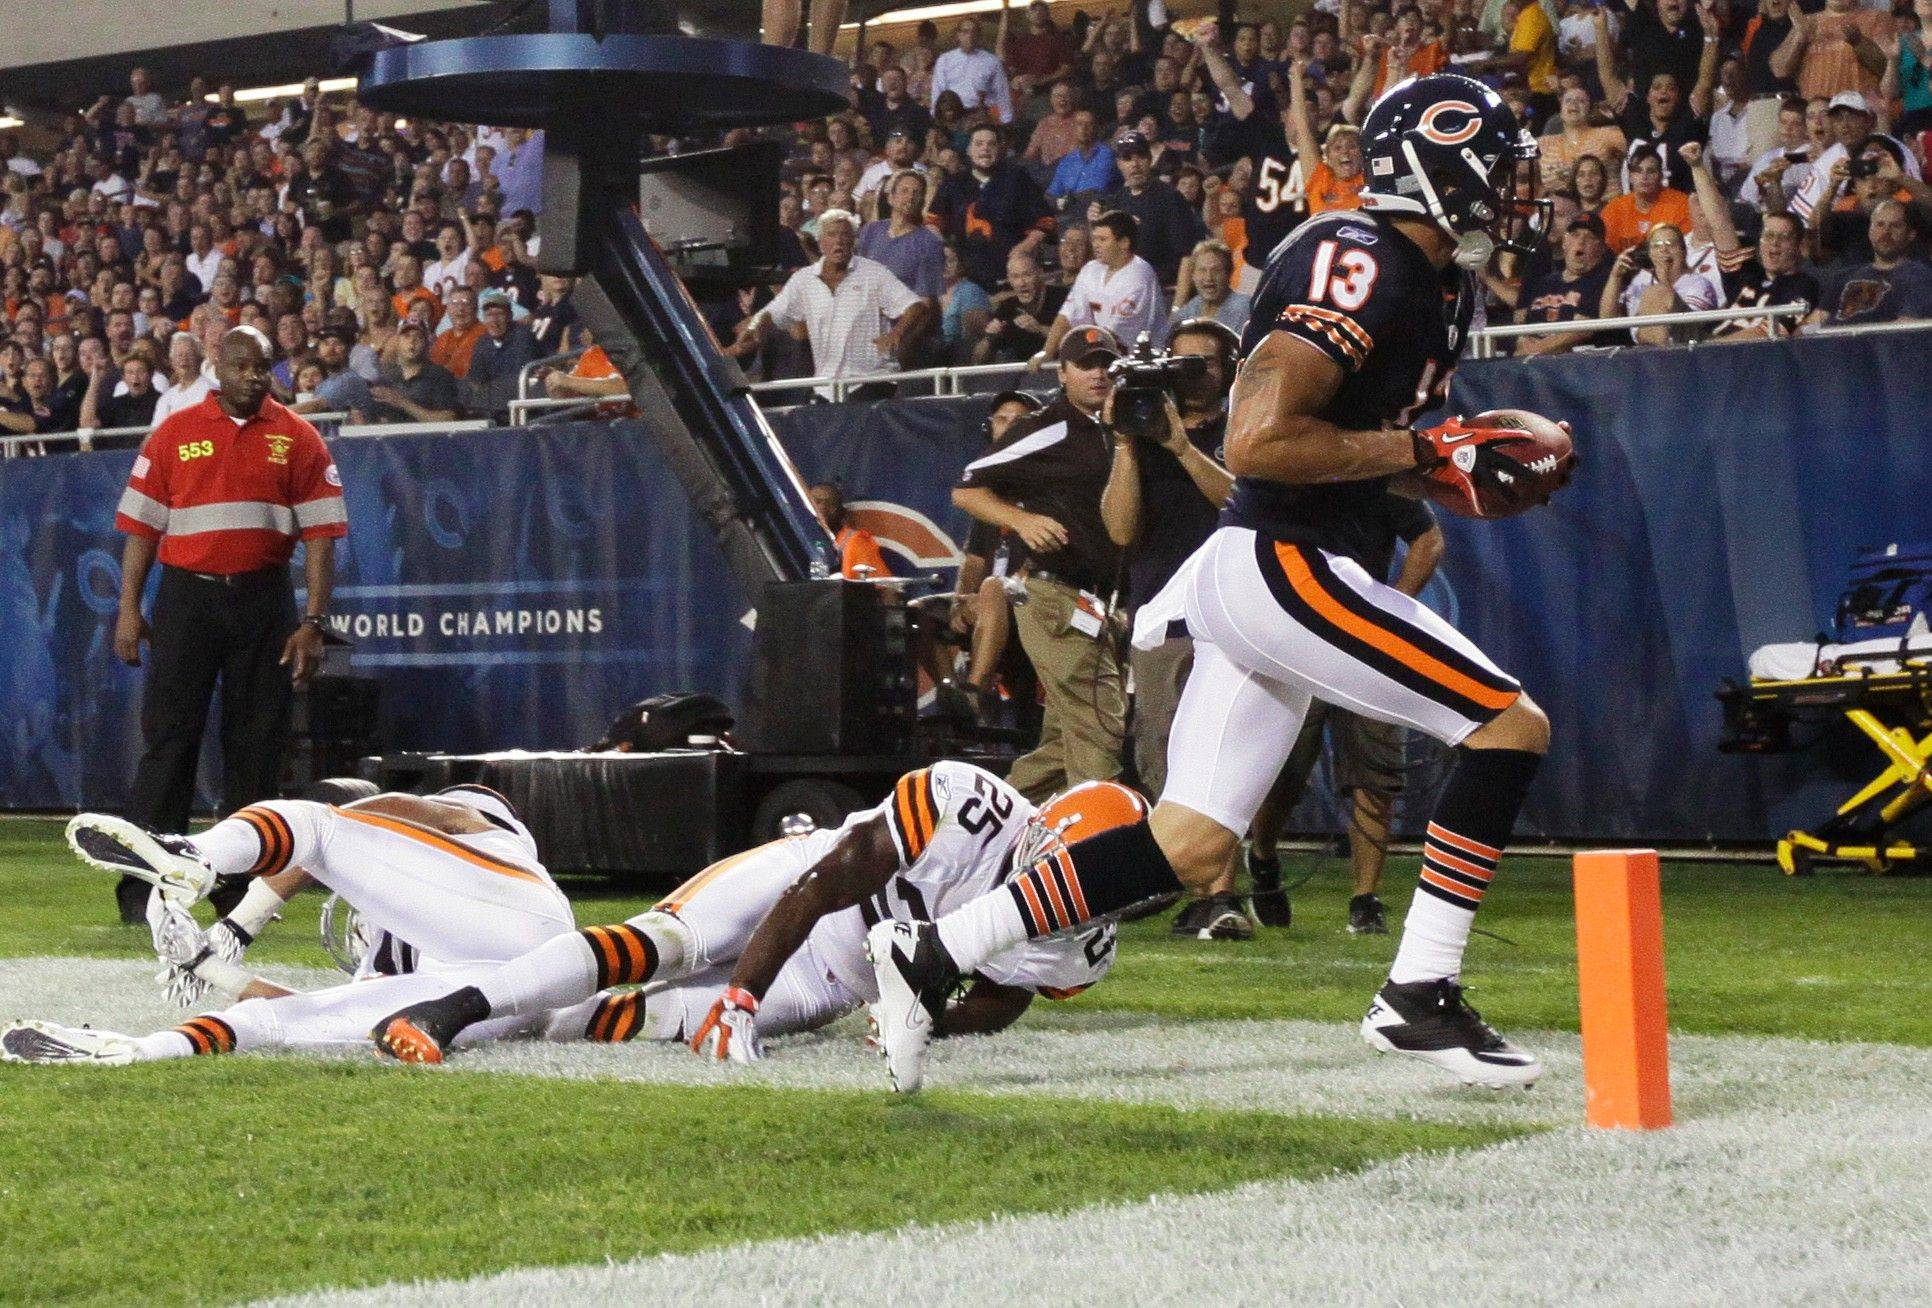 Chicago Bears wide receiver Johnny Knox scores on a pass reception past Cleveland Browns defensive back DeAngelo Smith and another Browns defender in the first half.